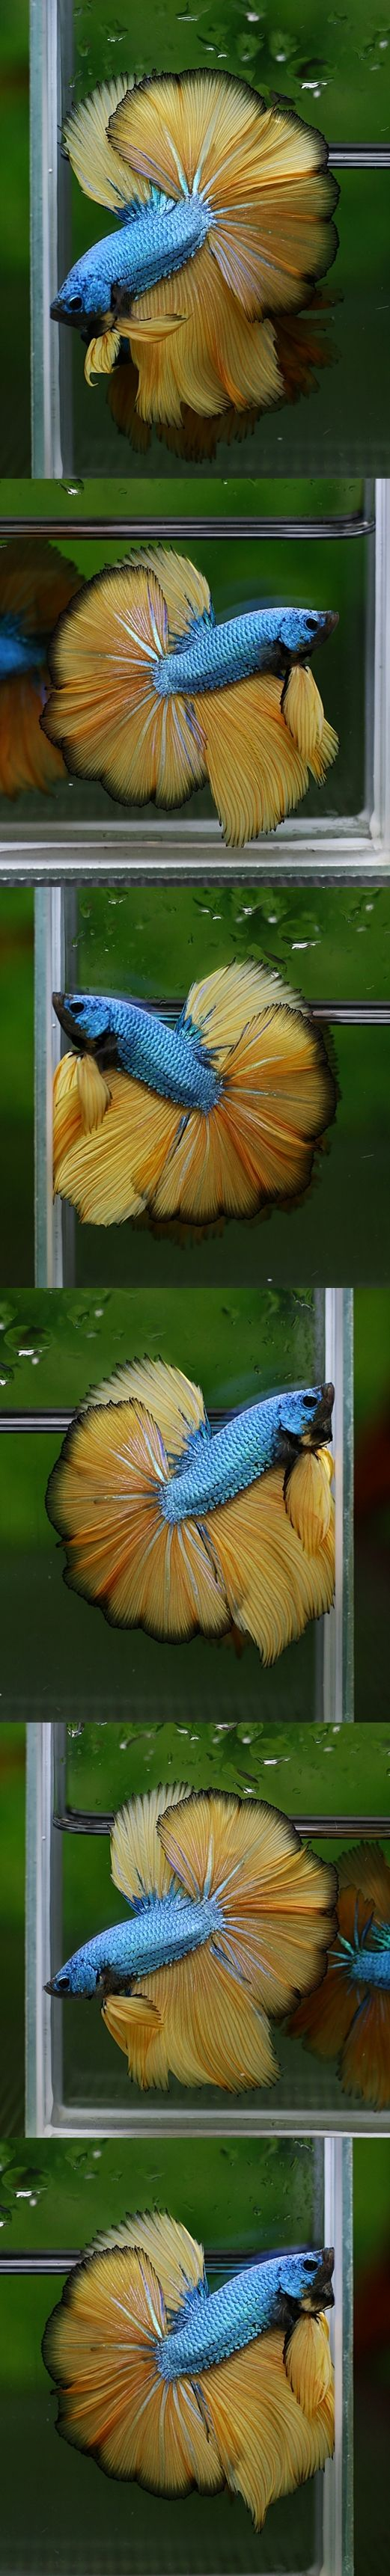 1000 images about siamese fighting fish betta fish for Types of betta fish petco